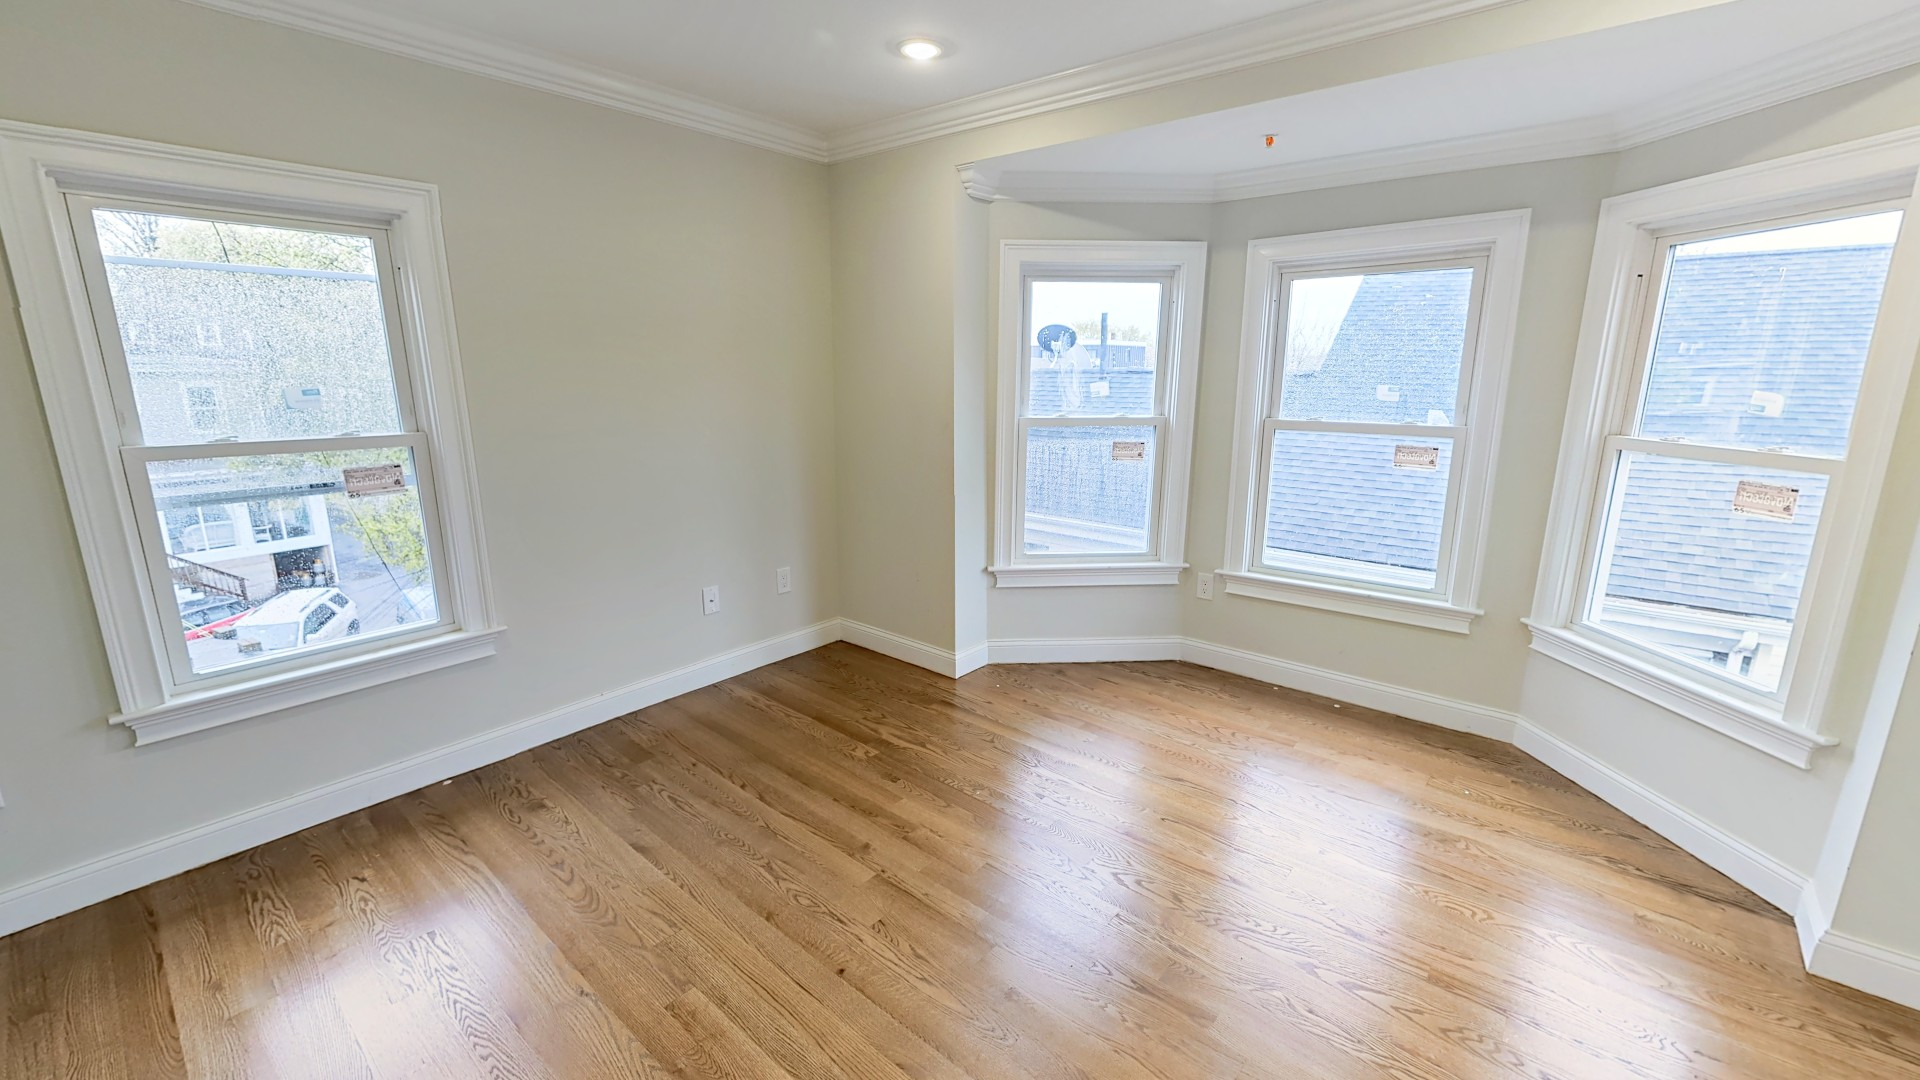 Photos of apartment on Cross St.,Somerville MA 02145